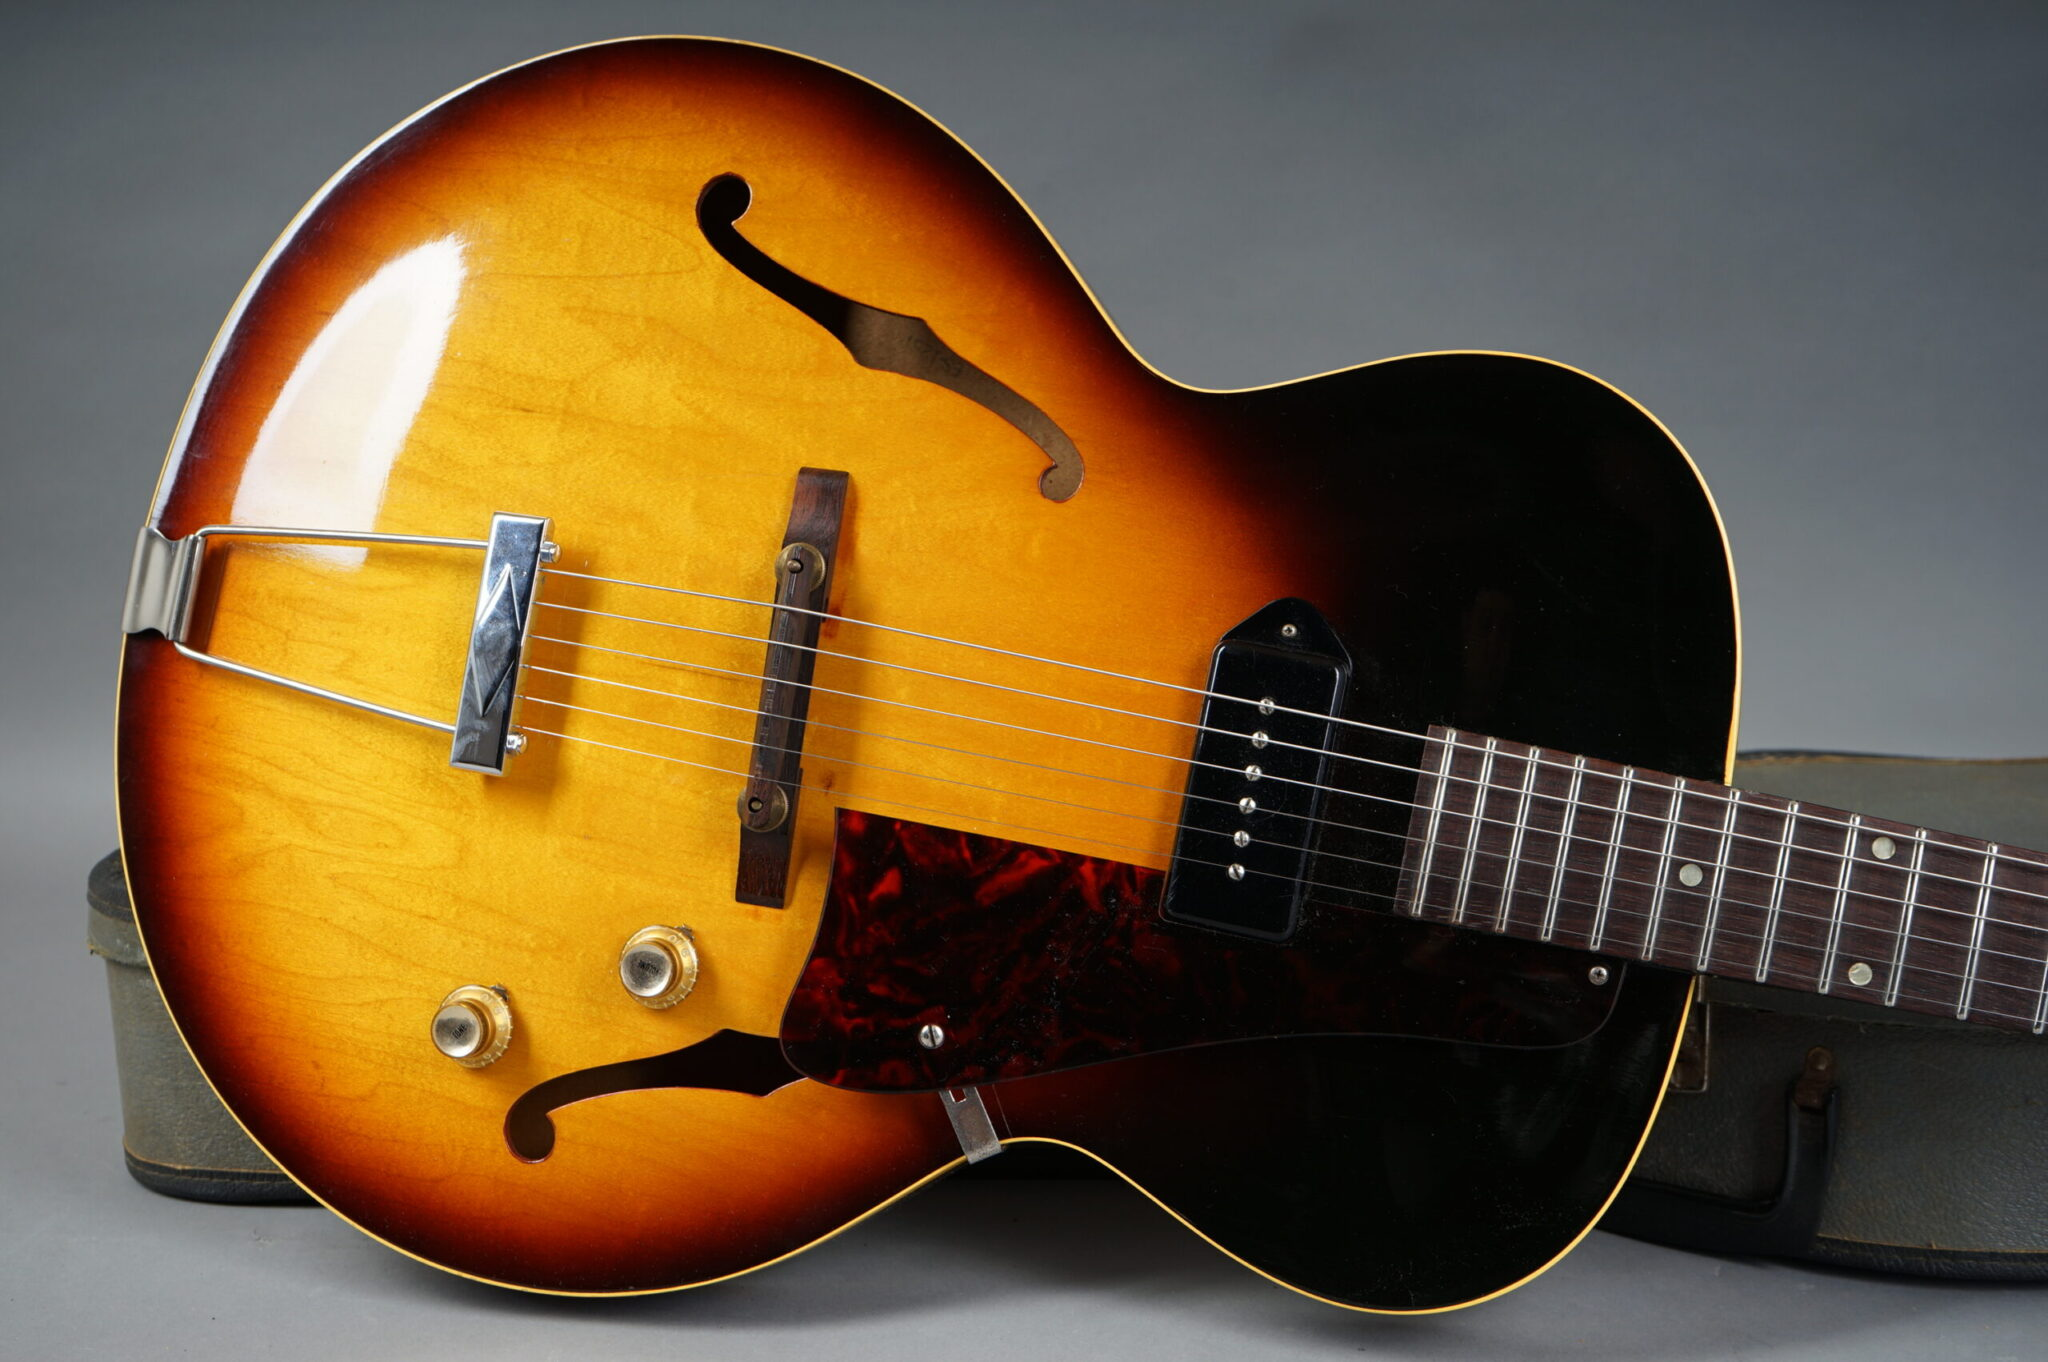 https://guitarpoint.de/app/uploads/products/1964-gibson-es-125t-sunburst/1964-Gibson-ES-125T-16969-8-scaled-2048x1362.jpg